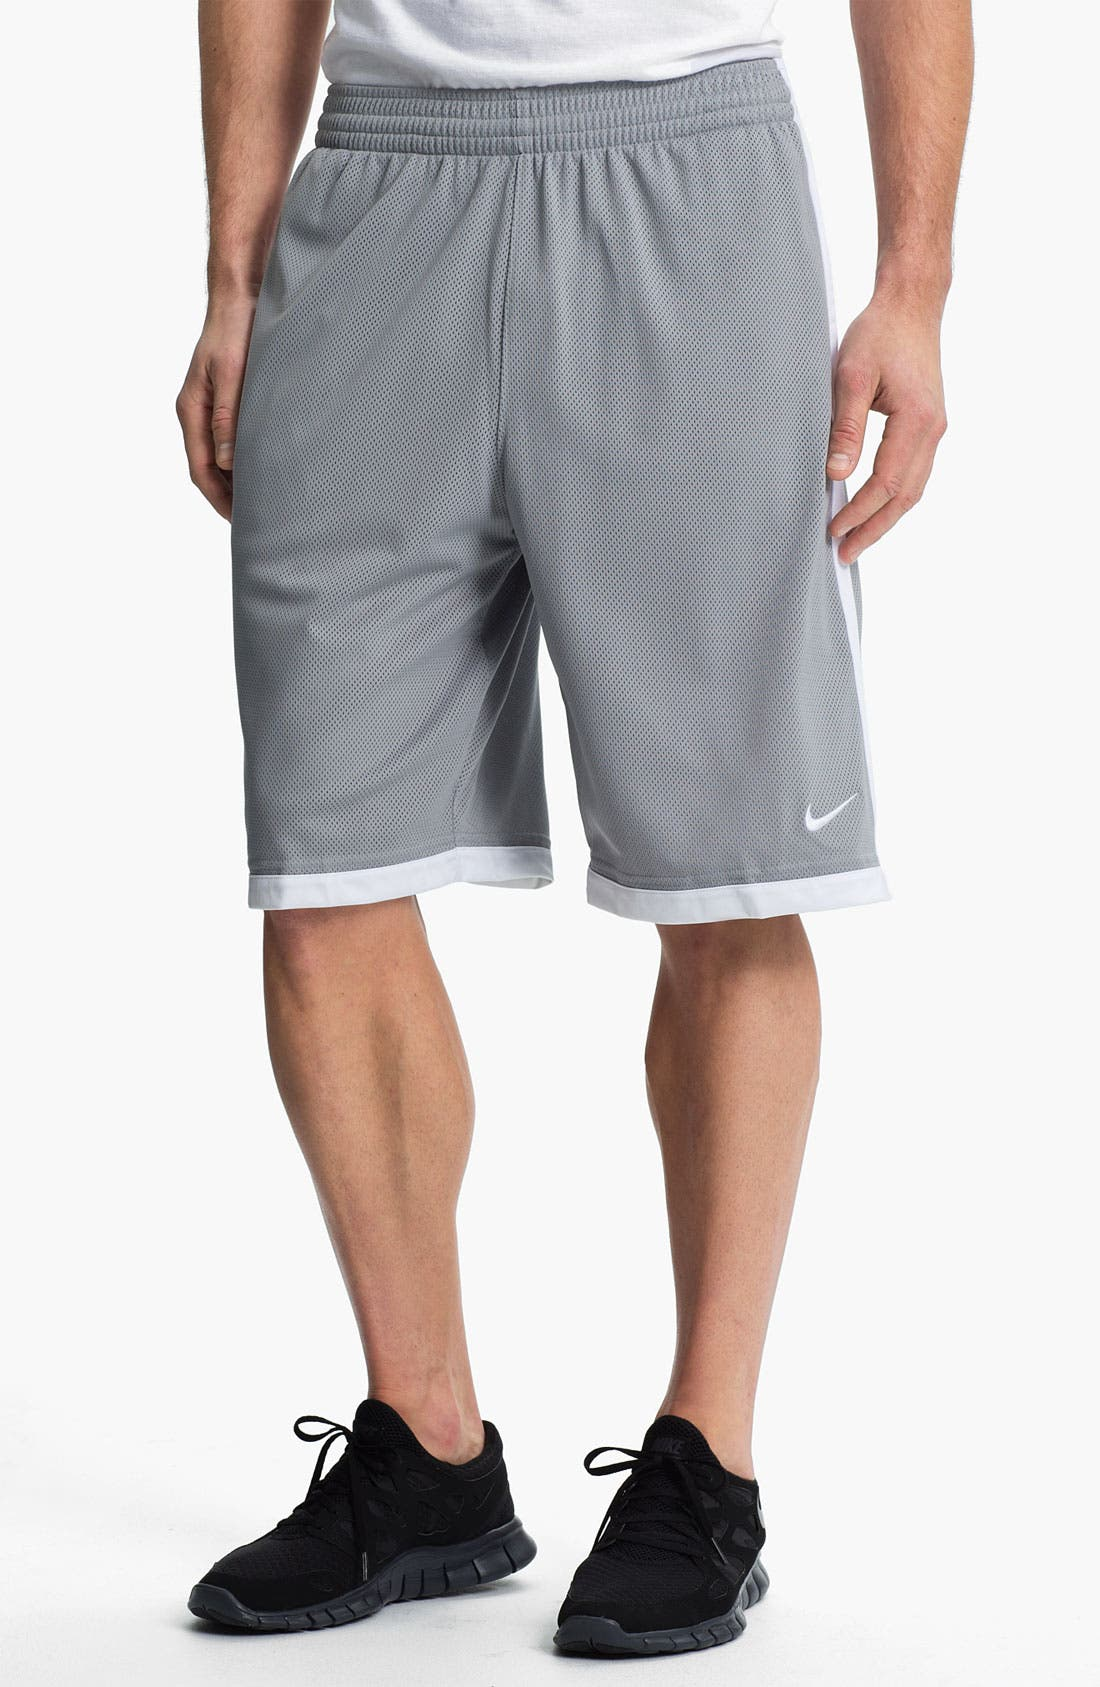 Alternate Image 1 Selected - Nike 'Money' Mesh Shorts